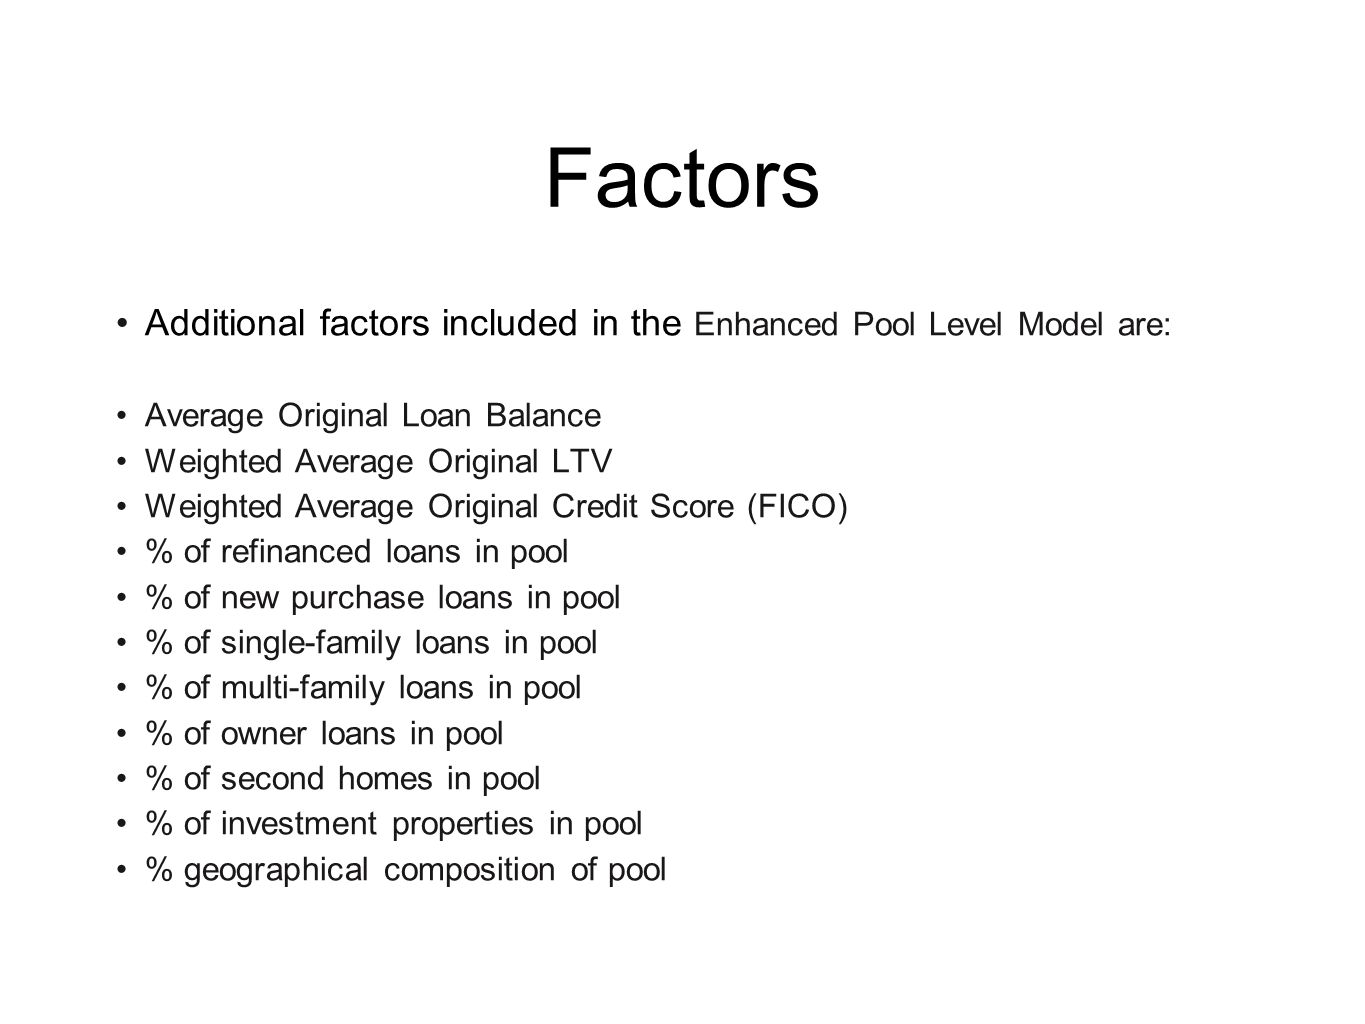 Factors Additional factors included in the Enhanced Pool Level Model are: Average Original Loan Balance Weighted Average Original LTV Weighted Average